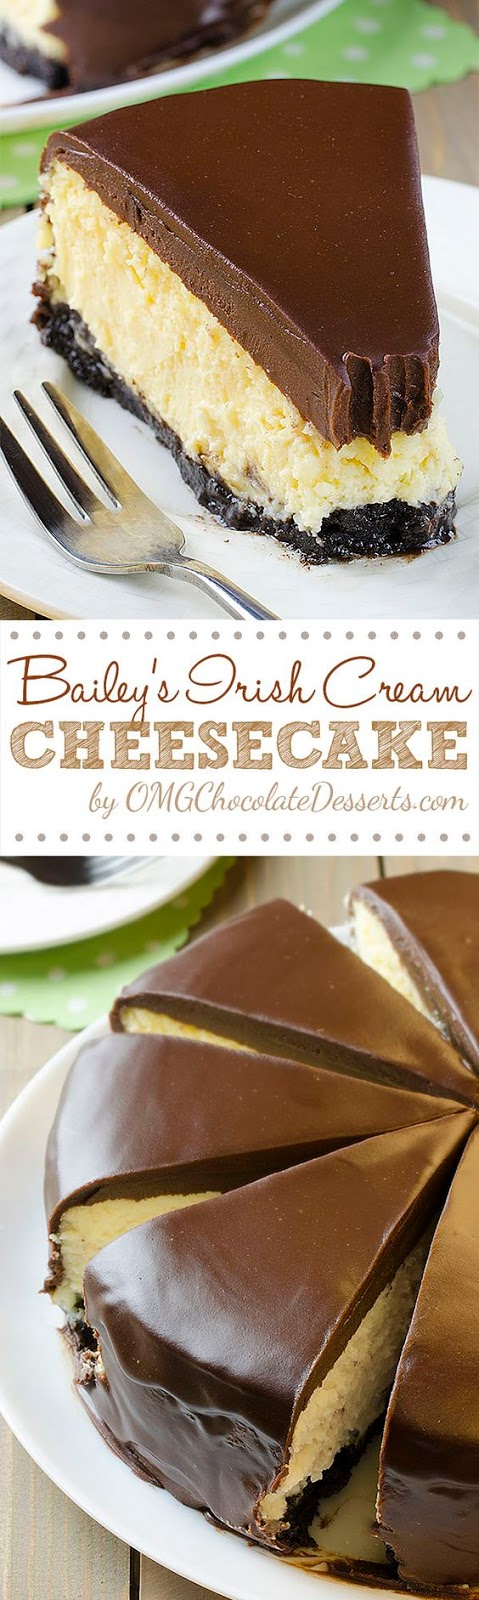 ★★★★☆ 7561 ratings | Bailey's Irish Cream Cheesecake #HEALTHYFOOD #EASYRECIPES #DINNER #LAUCH #DELICIOUS #EASY #HOLIDAYS #RECIPE #Bailey's #Irish #Cream #Cheesecake